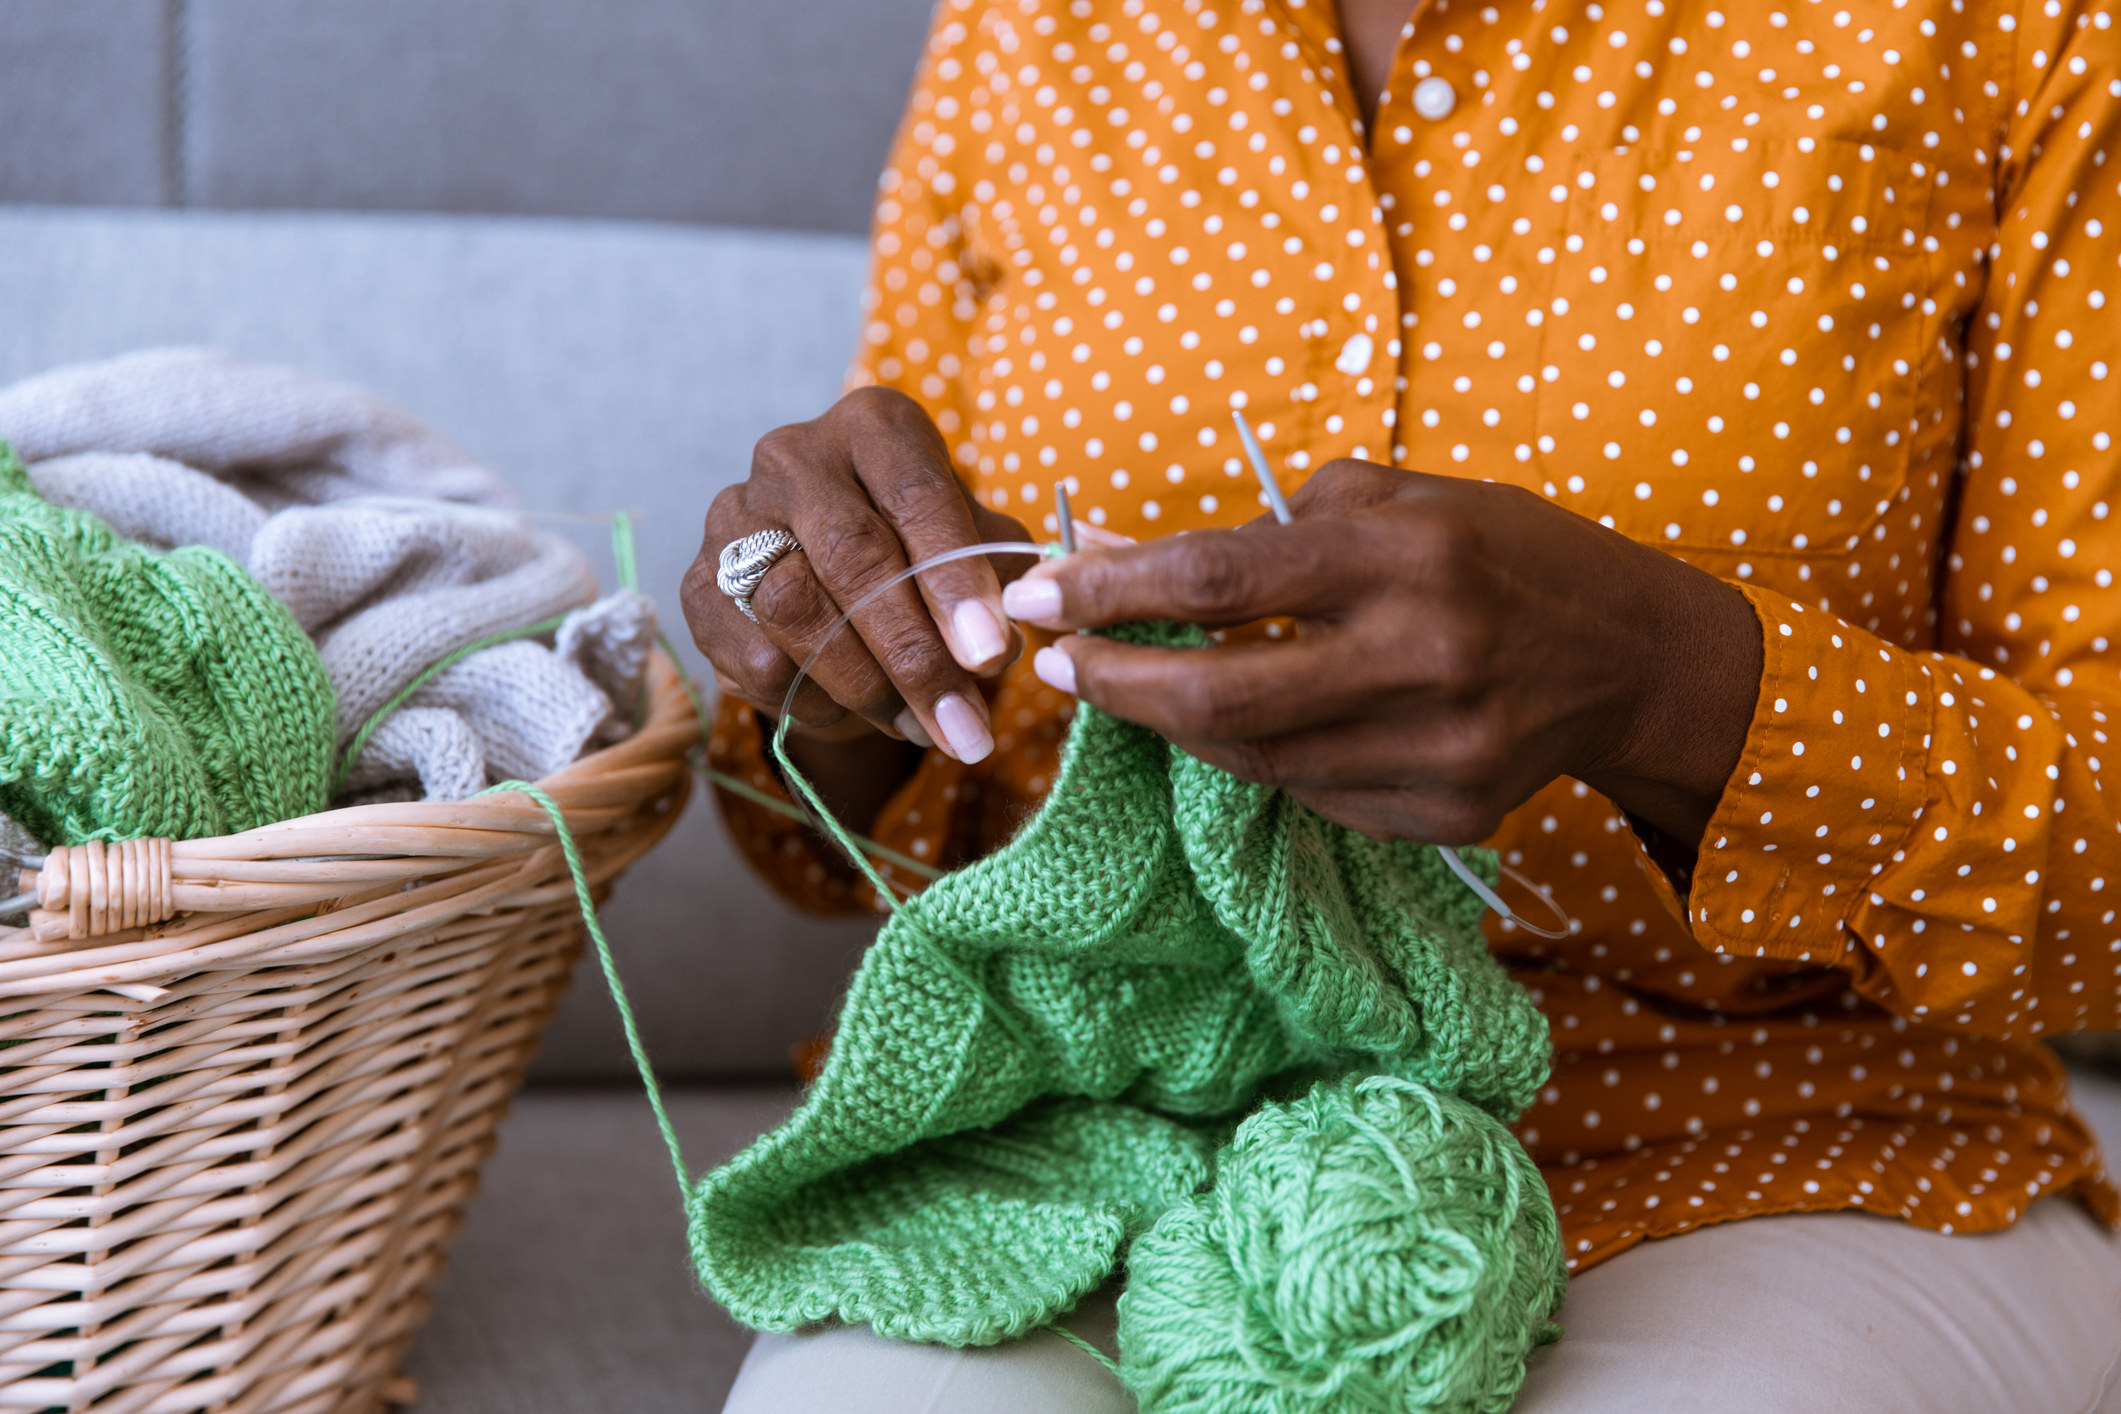 Older woman sitting on a couch and knitting